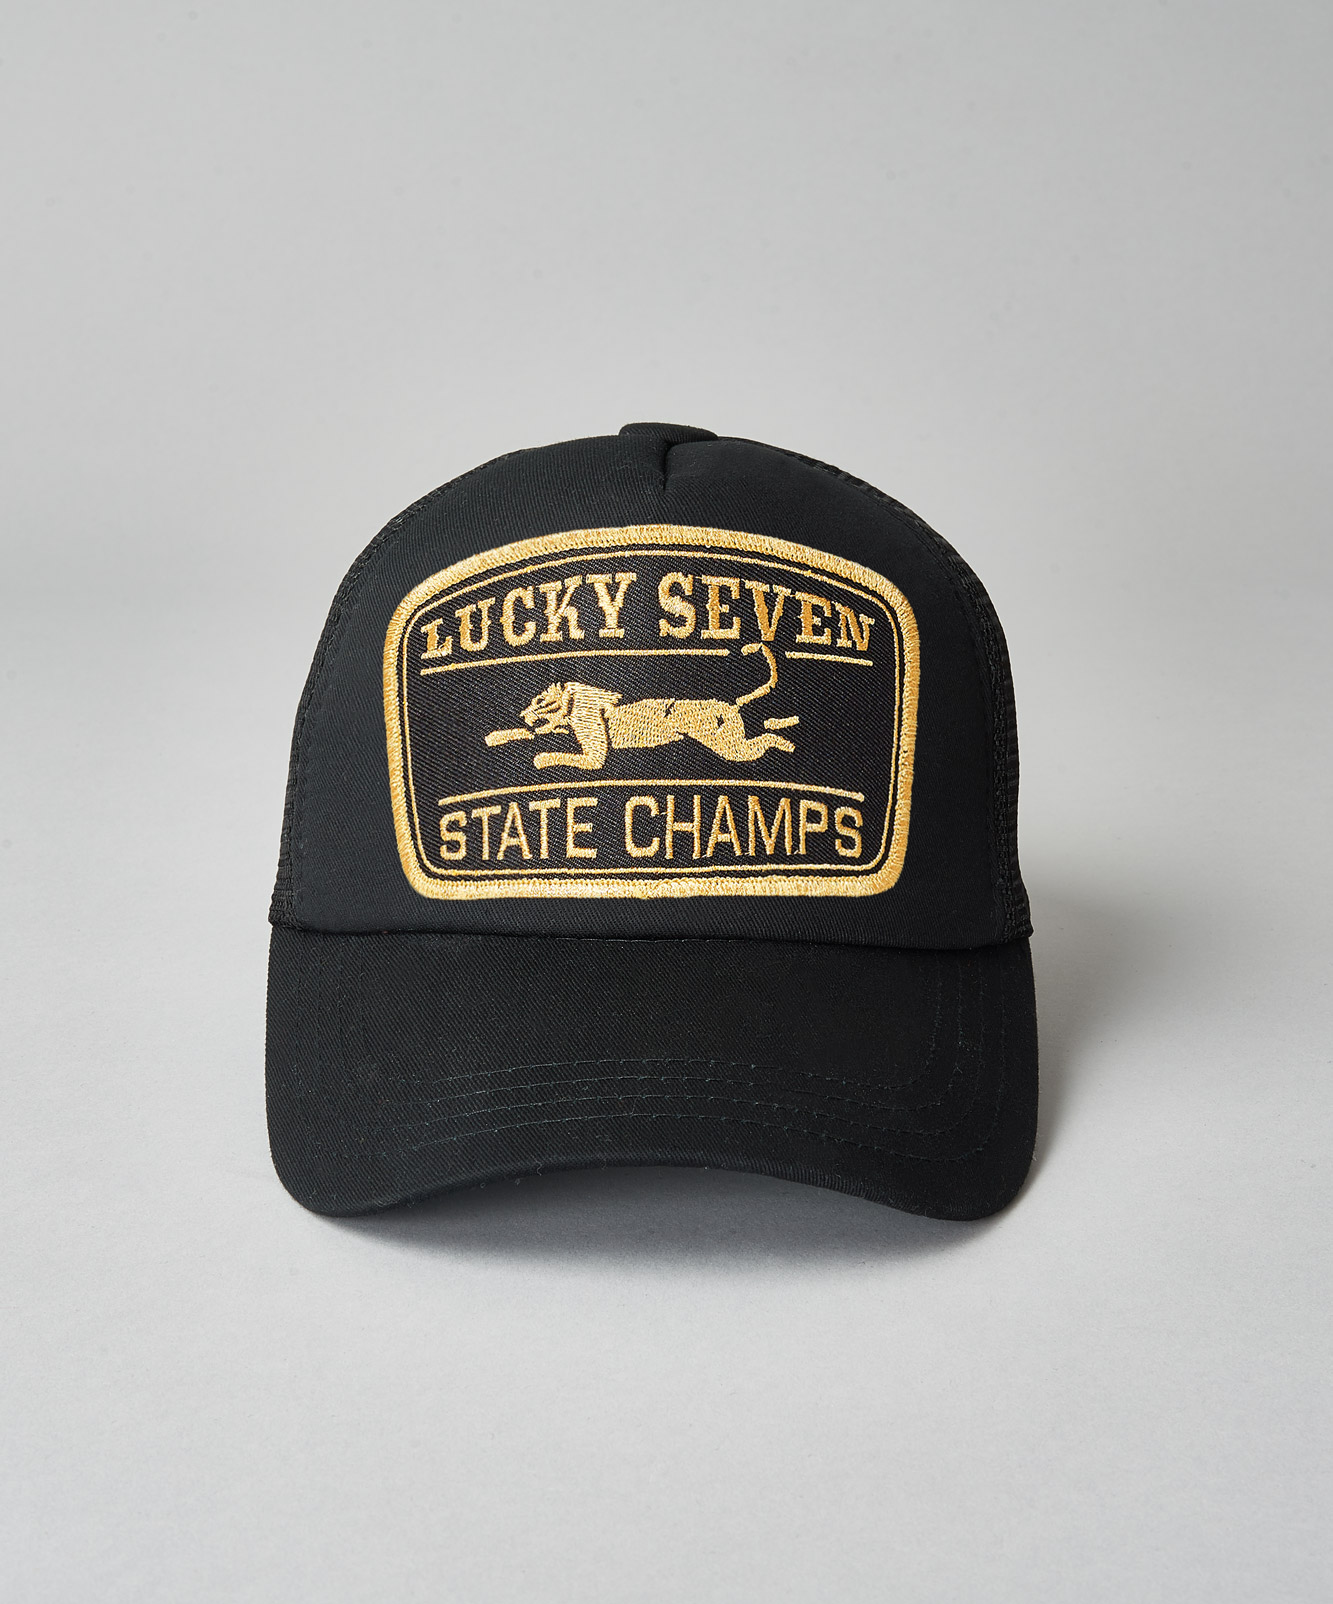 State Champs Trucker